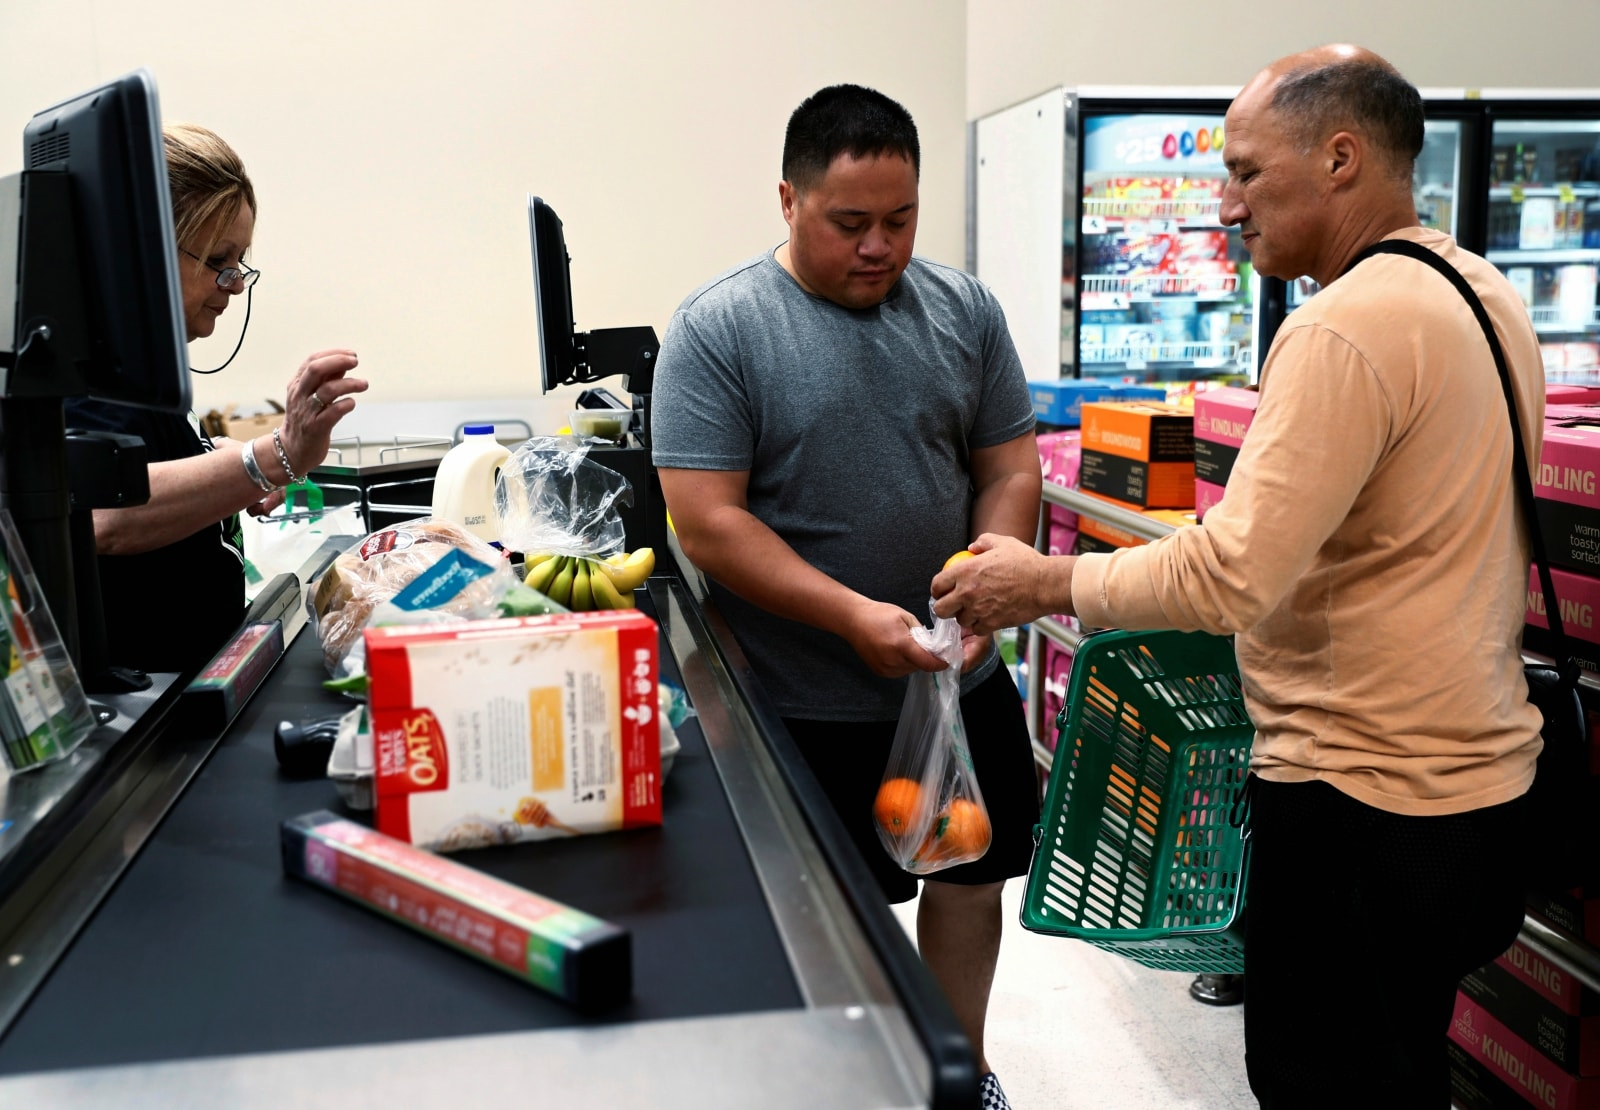 Mark Rangi, a New Zealander based in Sydney and a survivor of Christchurch shootings, shops for groceries with his son Sam at a supermarket in Christchurch, New Zealand, March 27, 2019. REUTERS/Edgar Su